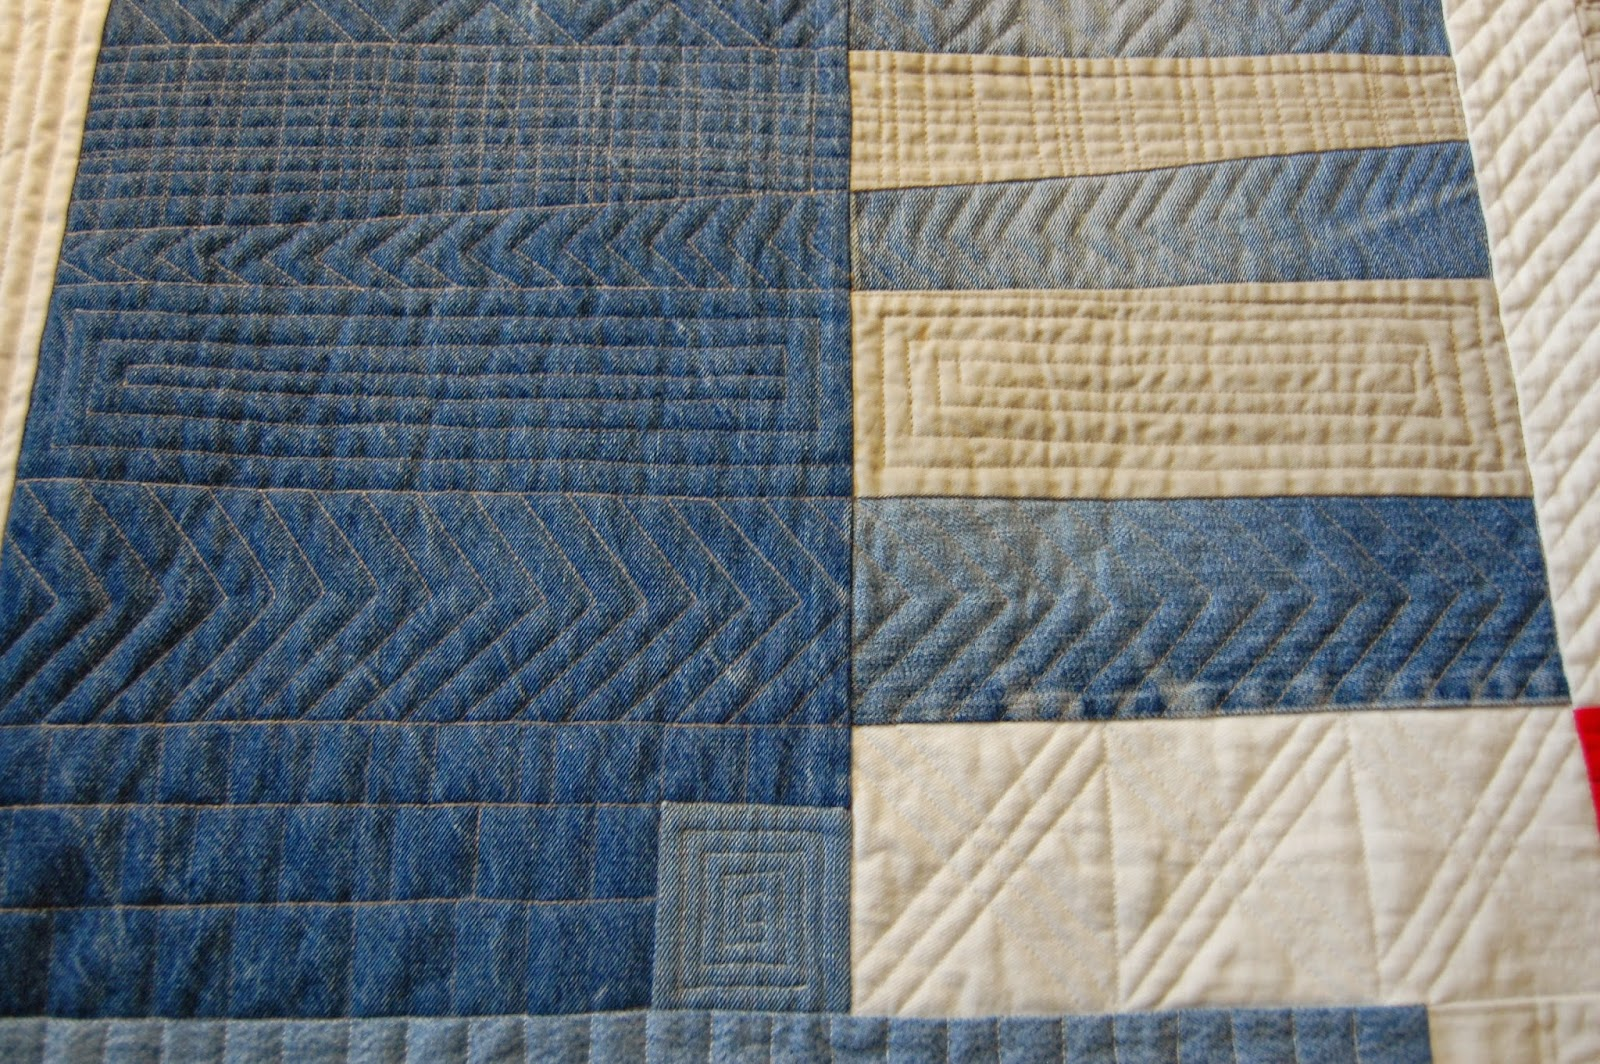 was much before sew washing improvised wrinkly quilt quilts less improvisational blog denim the diy